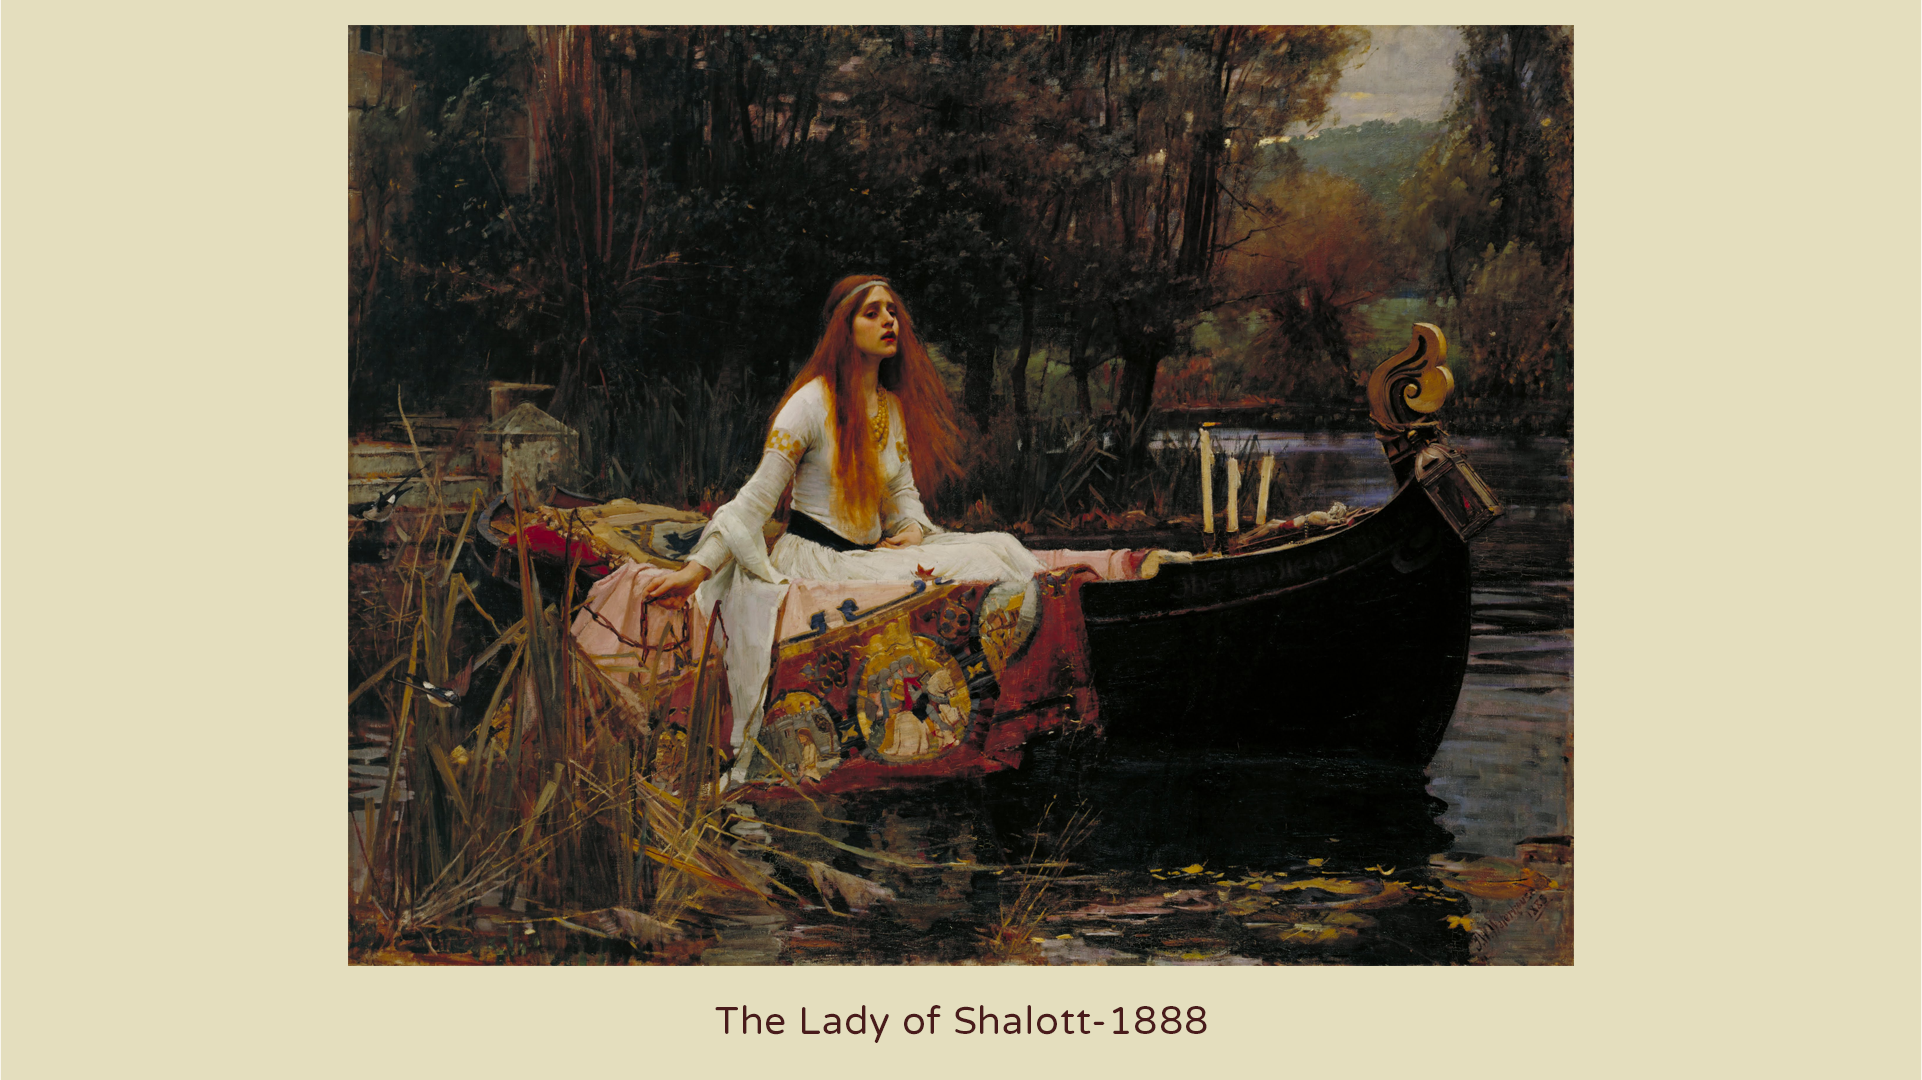 lade of shalott.png